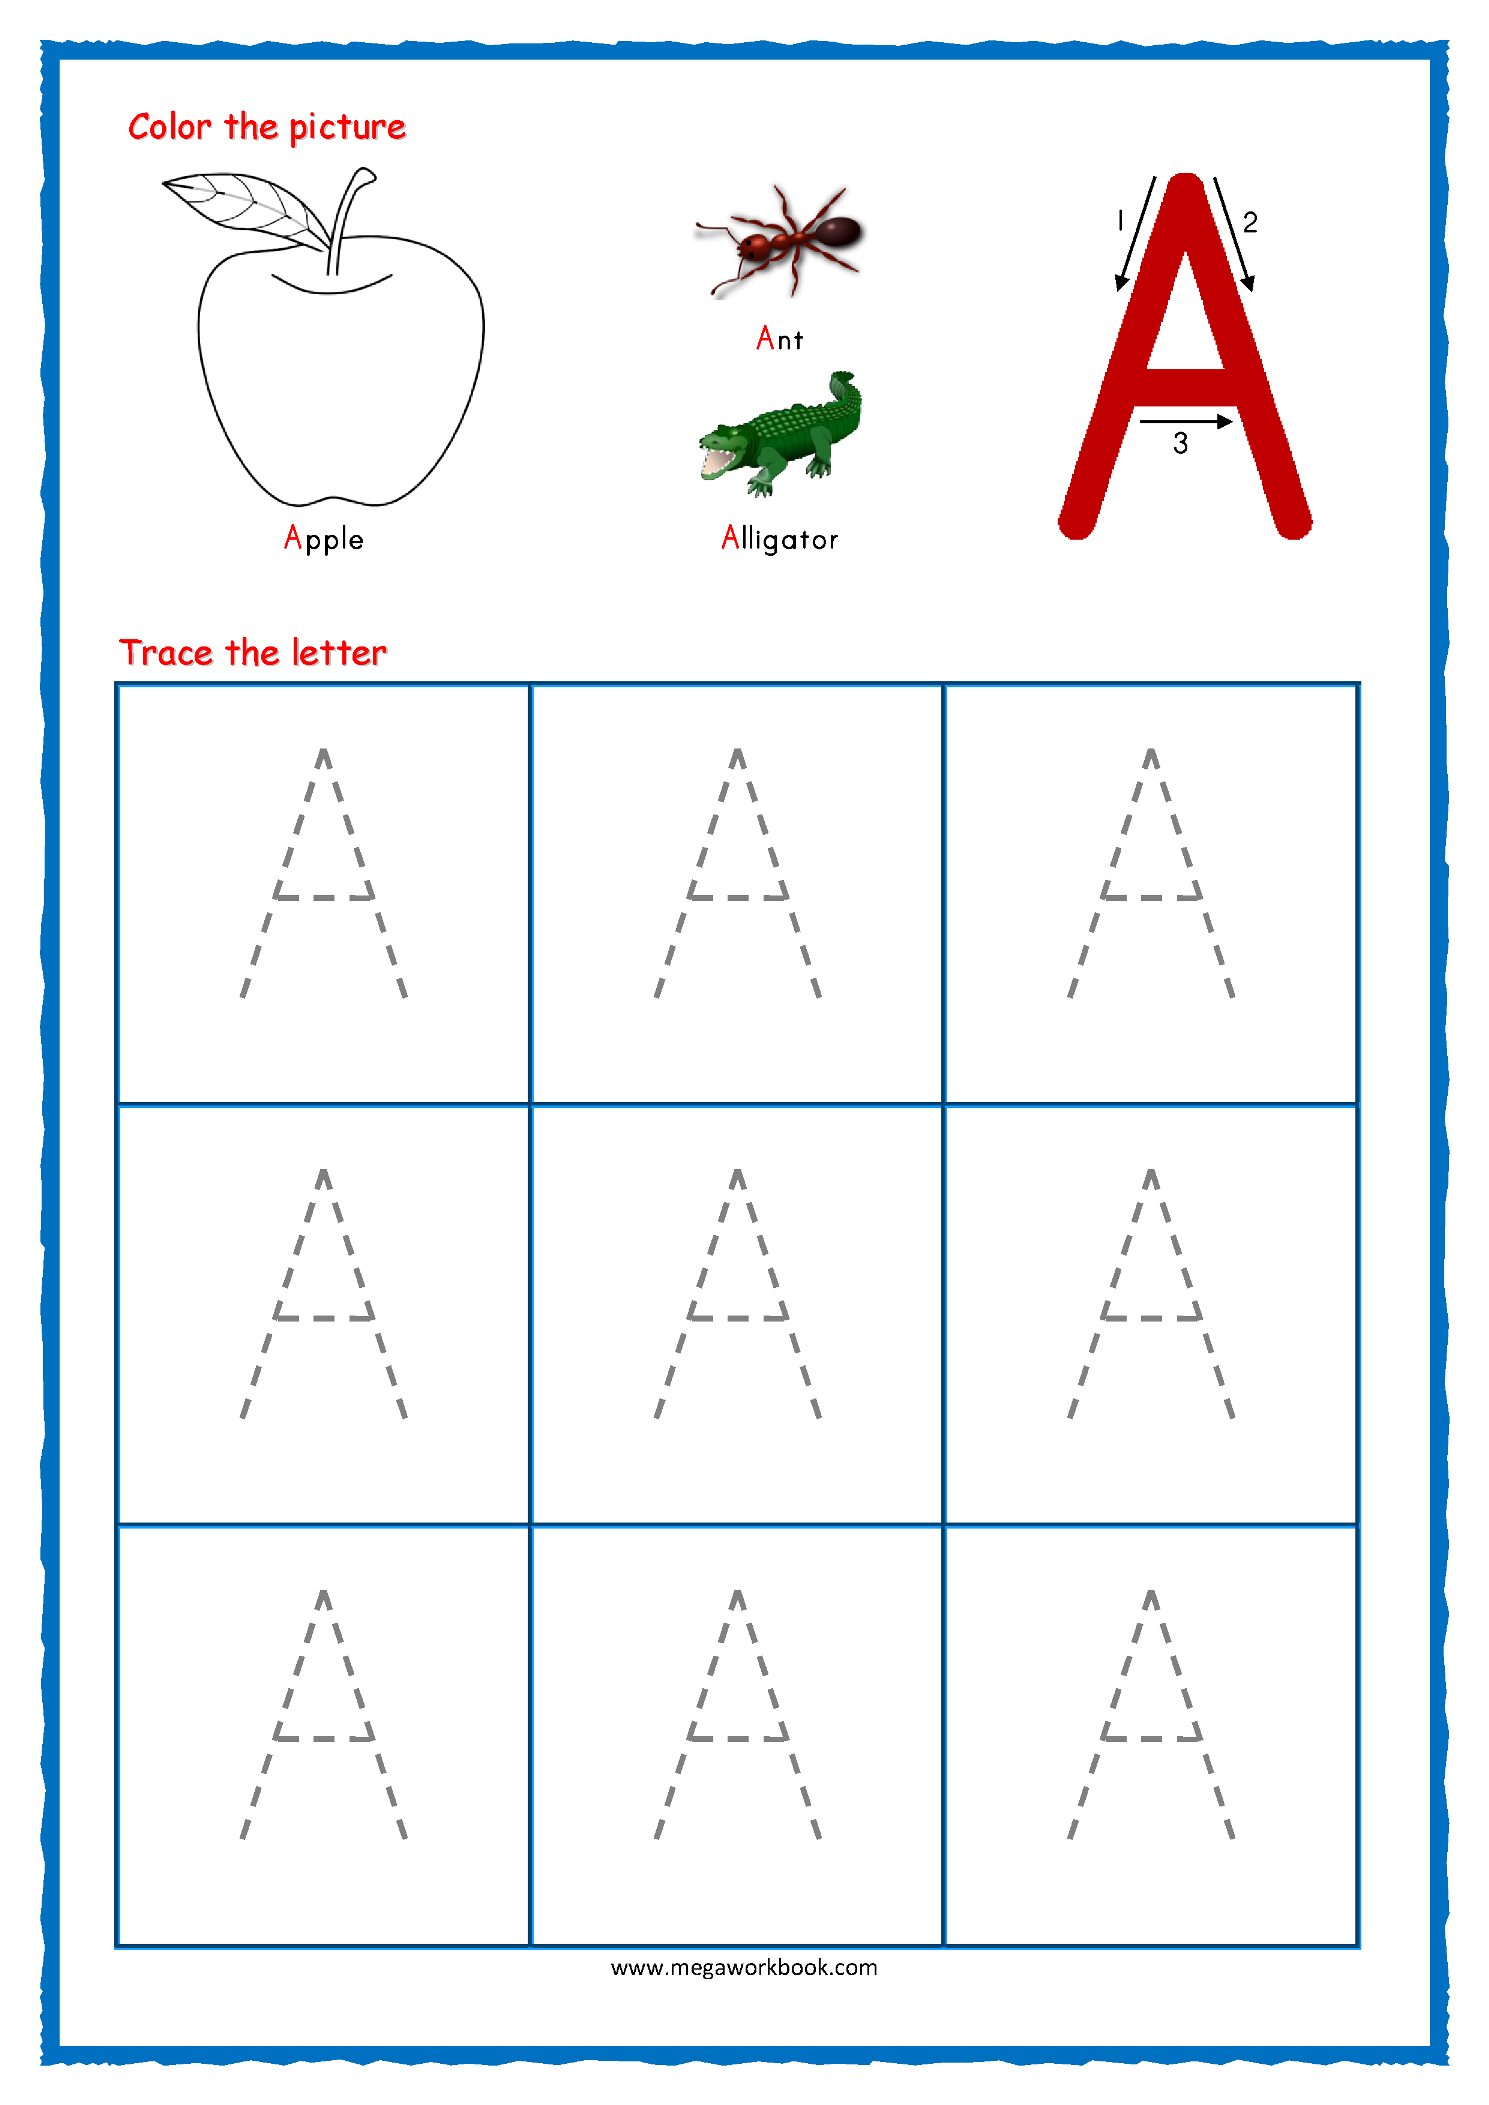 Tracing Letters - Alphabet Tracing - Capital Letters pertaining to Tracing Letters Worksheets For Nursery